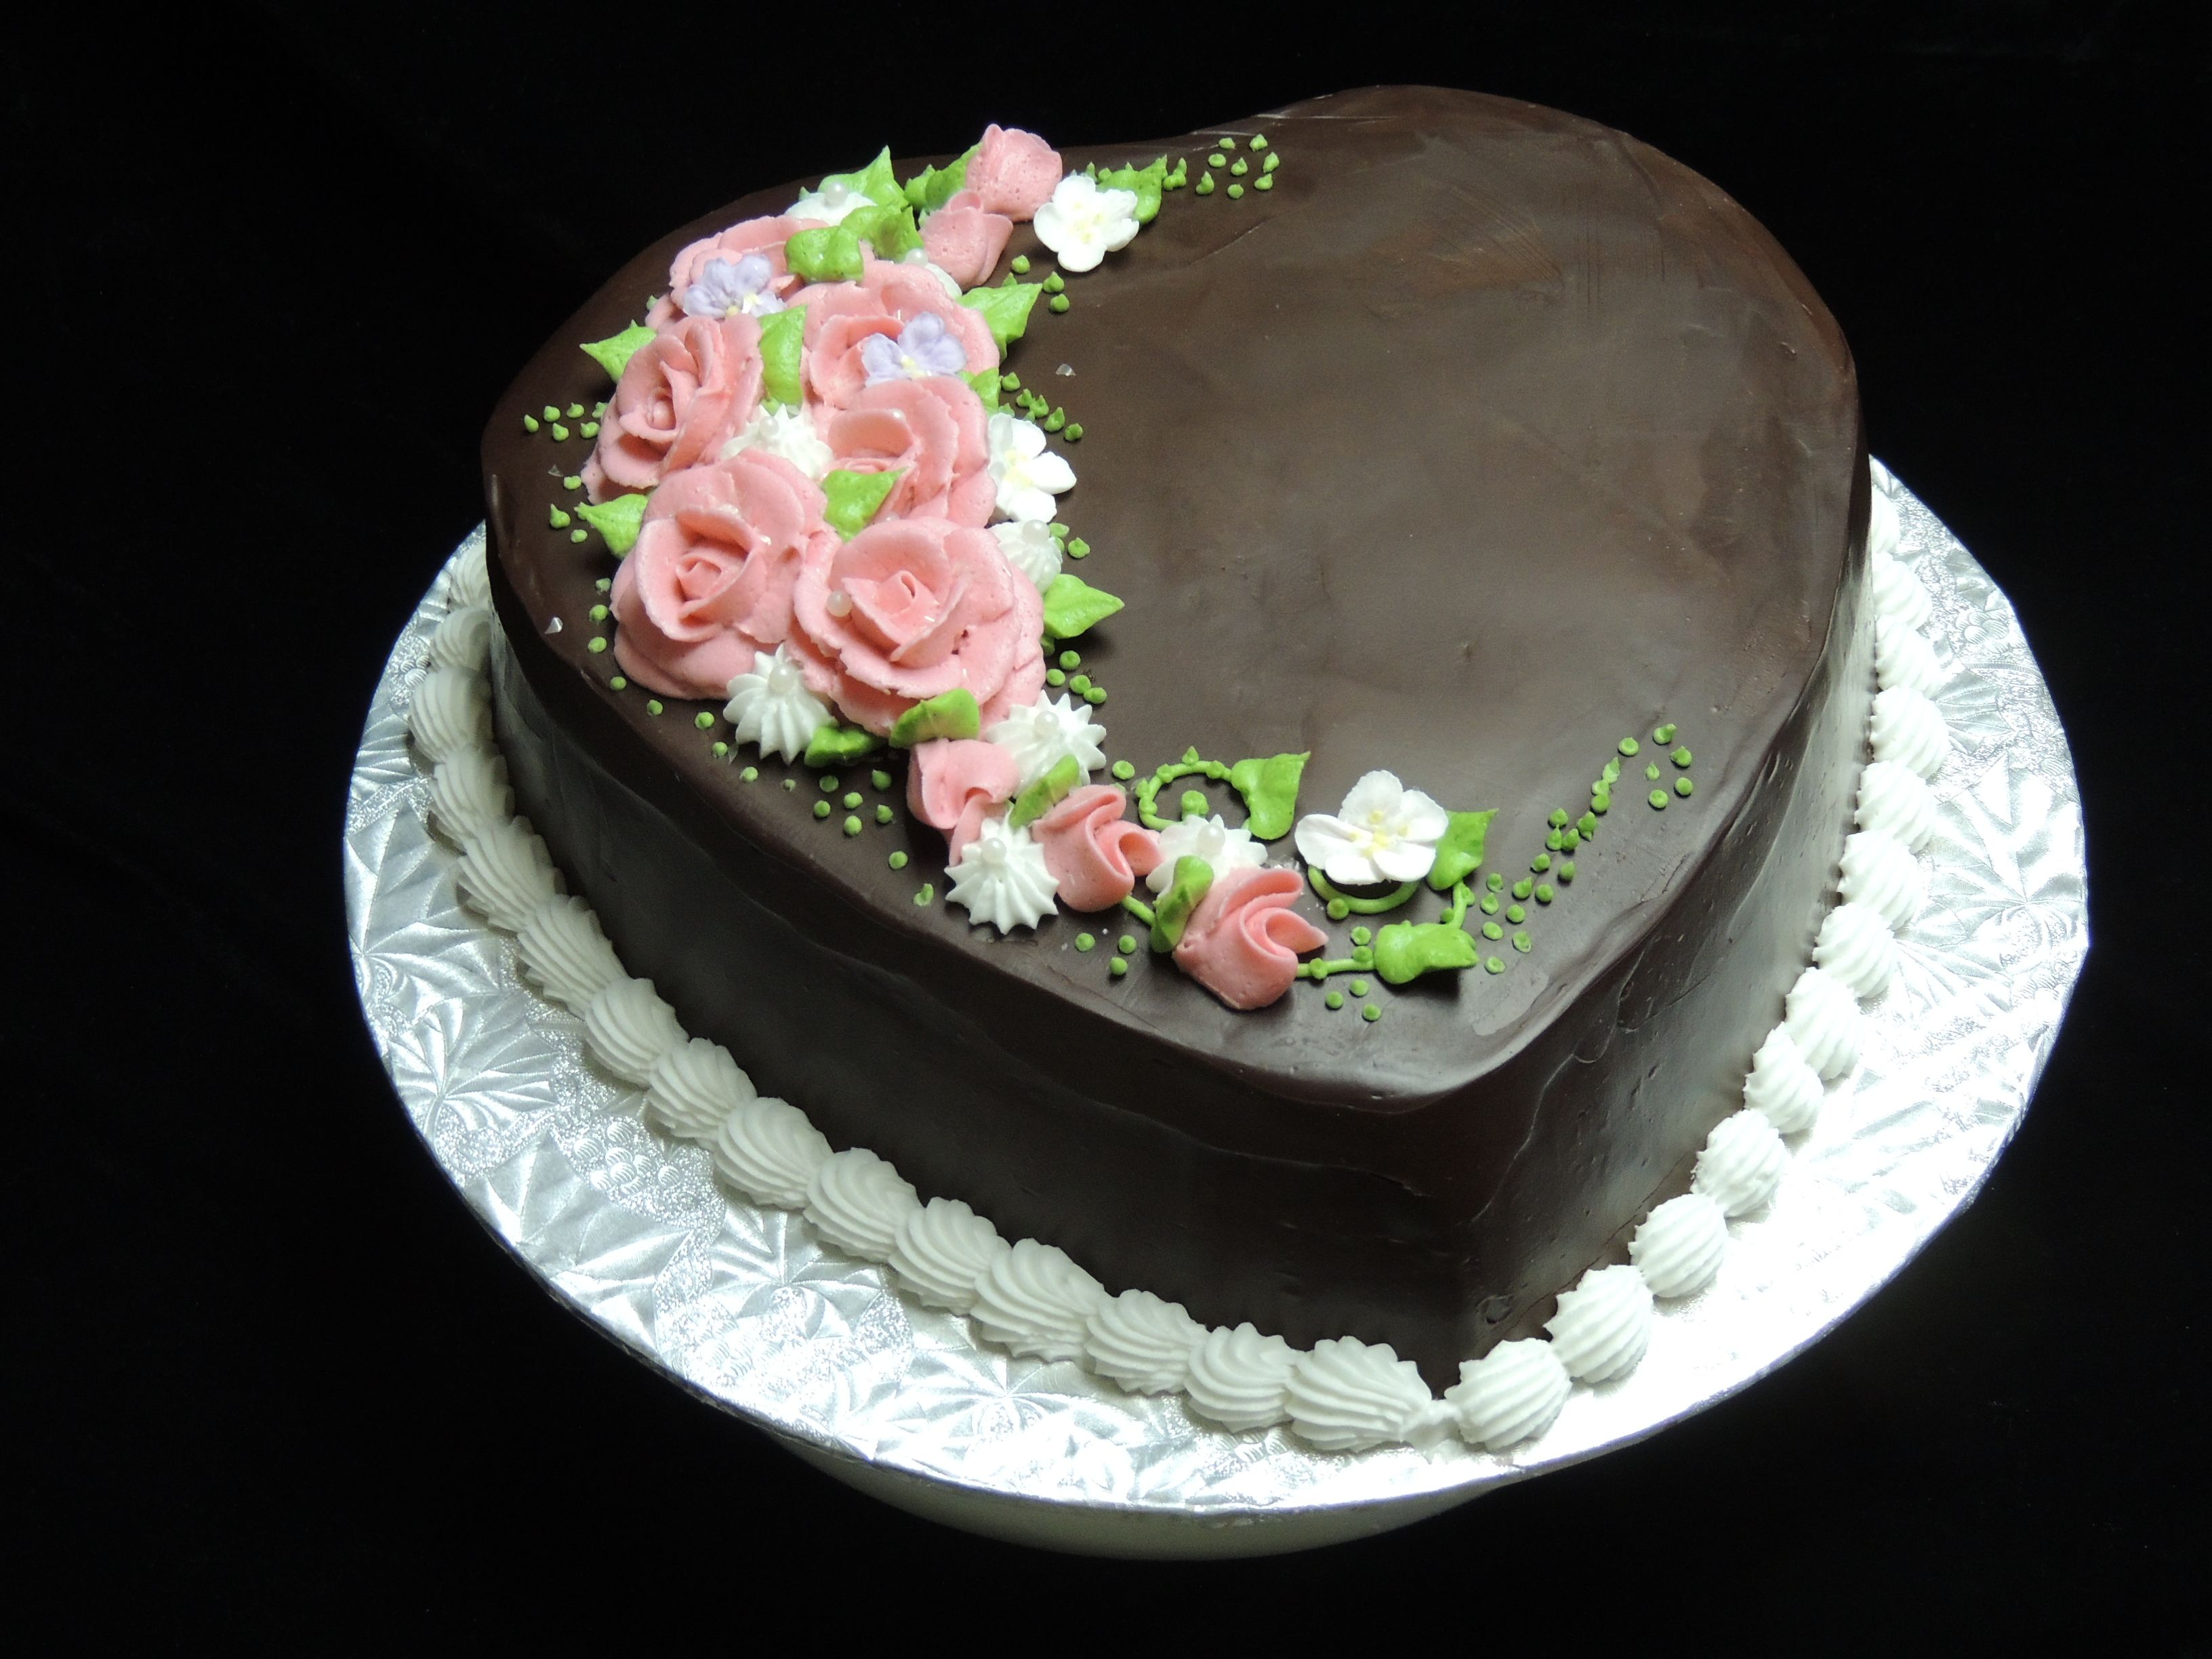 Floral Heart Cake Rich Chocolate Ganache Covered Heart